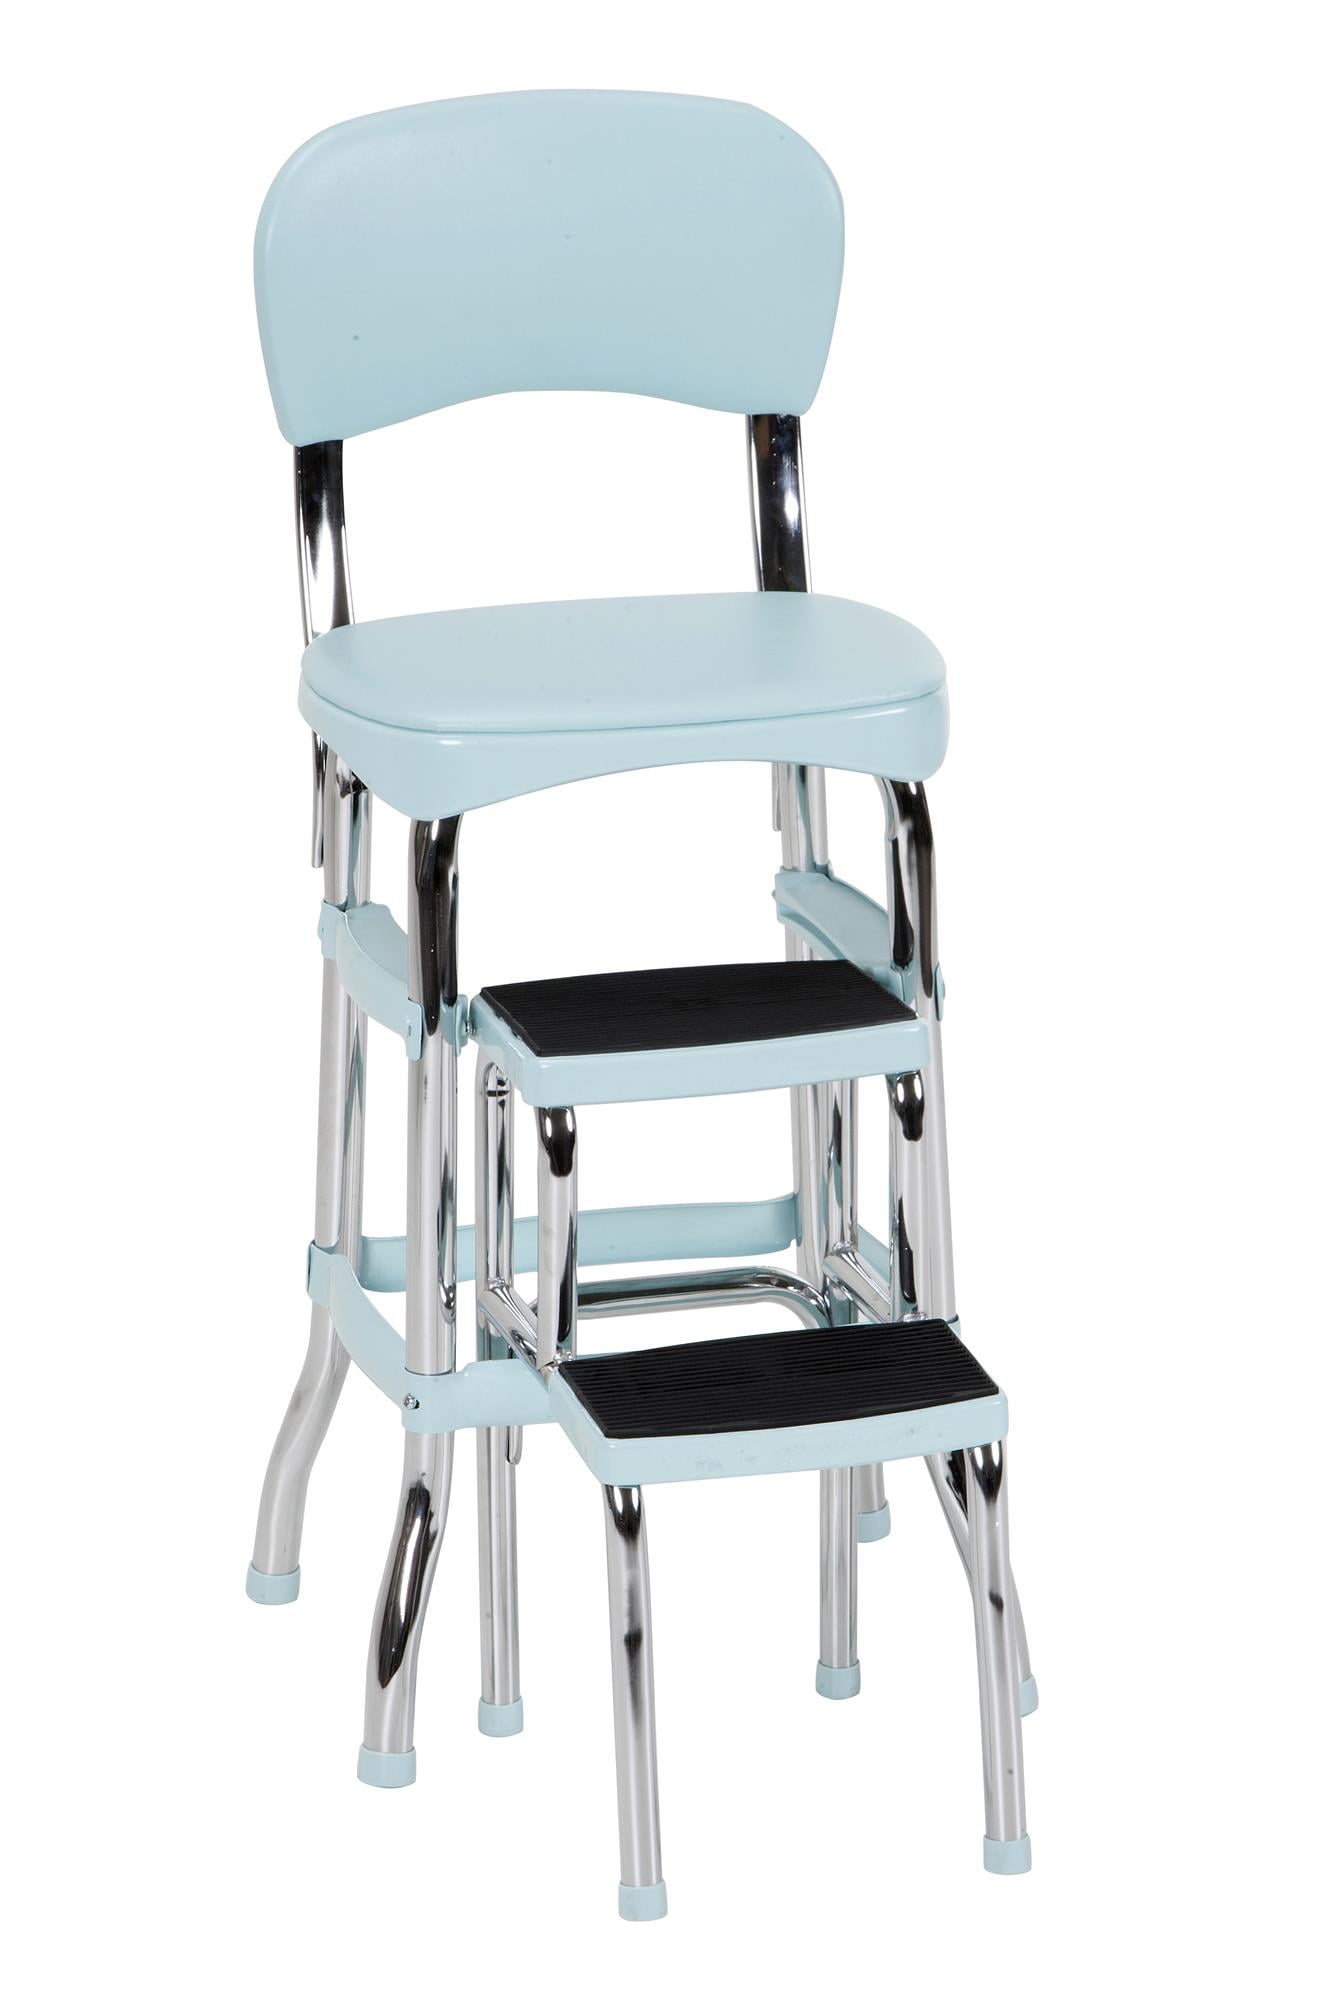 Cosco Stylaire Retro Chair Step Stool With Pull Out Steps Teal One Pack Walmart Com Walmart Com